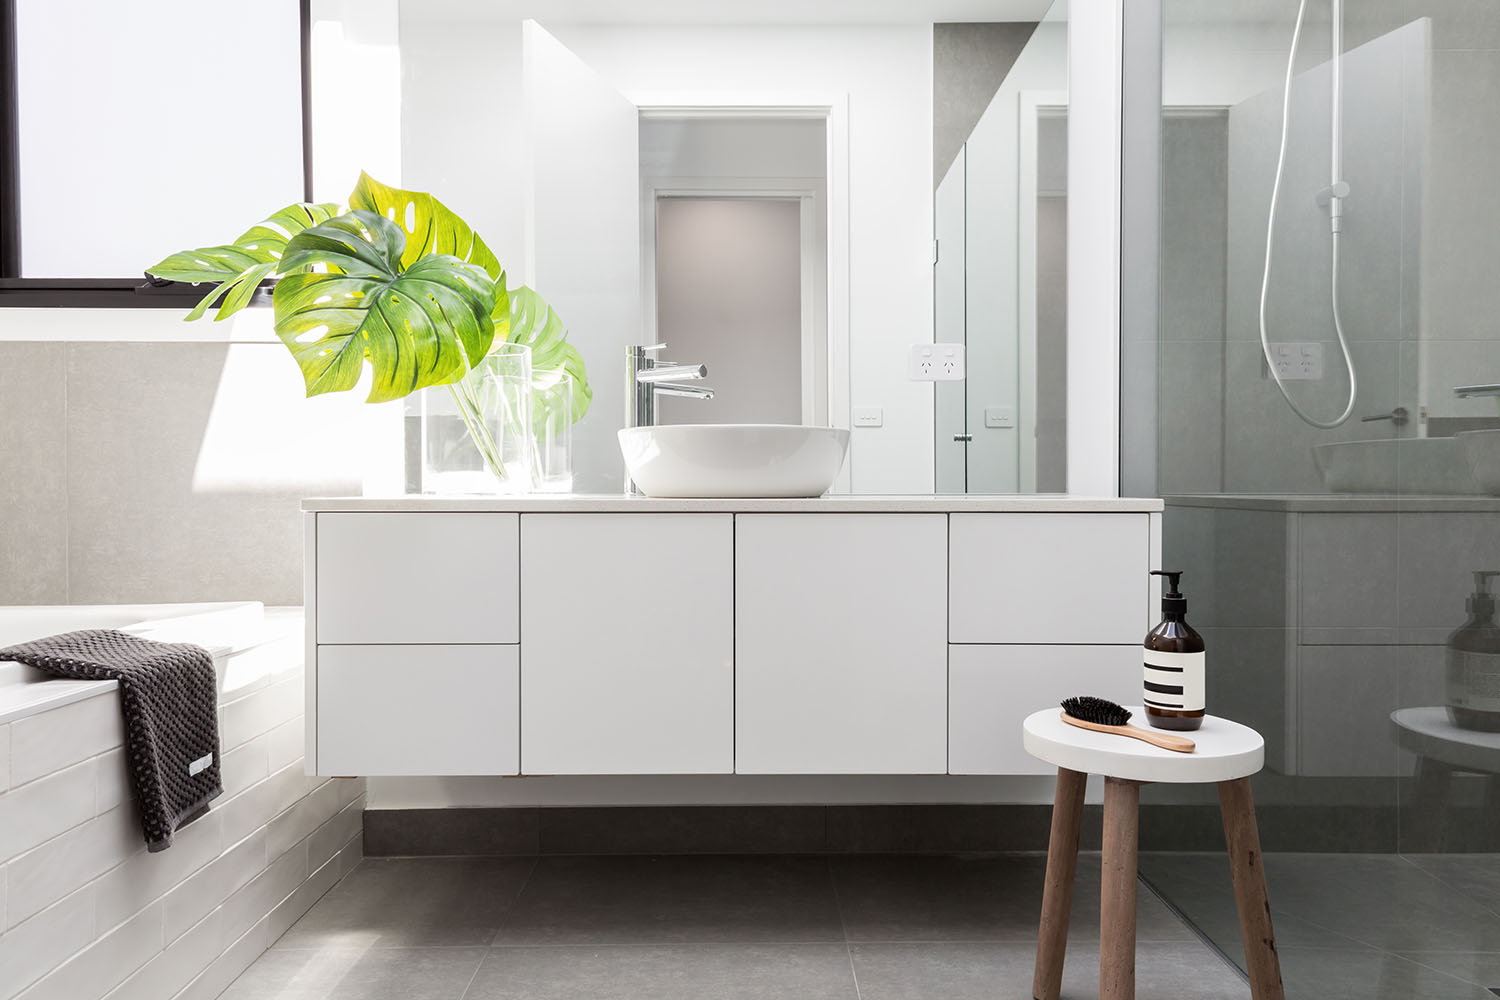 Small Renovations Melbourne Cheap Bathroom Renovations How Much They Cost And How To Save